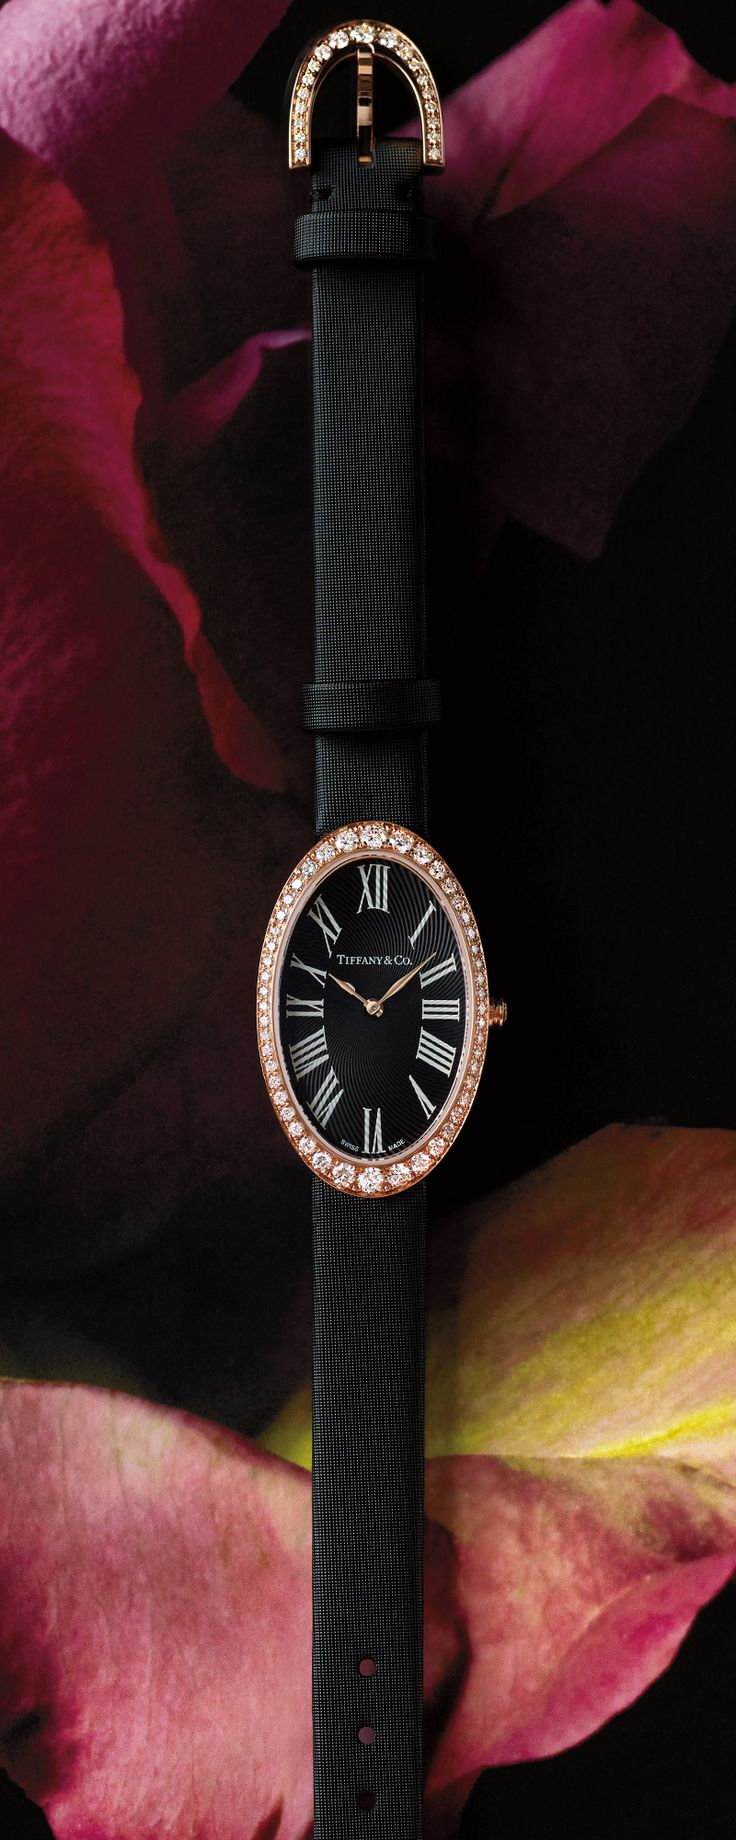 The time is now. Discover timeless Tiffany watch designs, like the Tiffany Cocktail 2-Hand 21 x 34 mm women's watch in 18k rose gold.